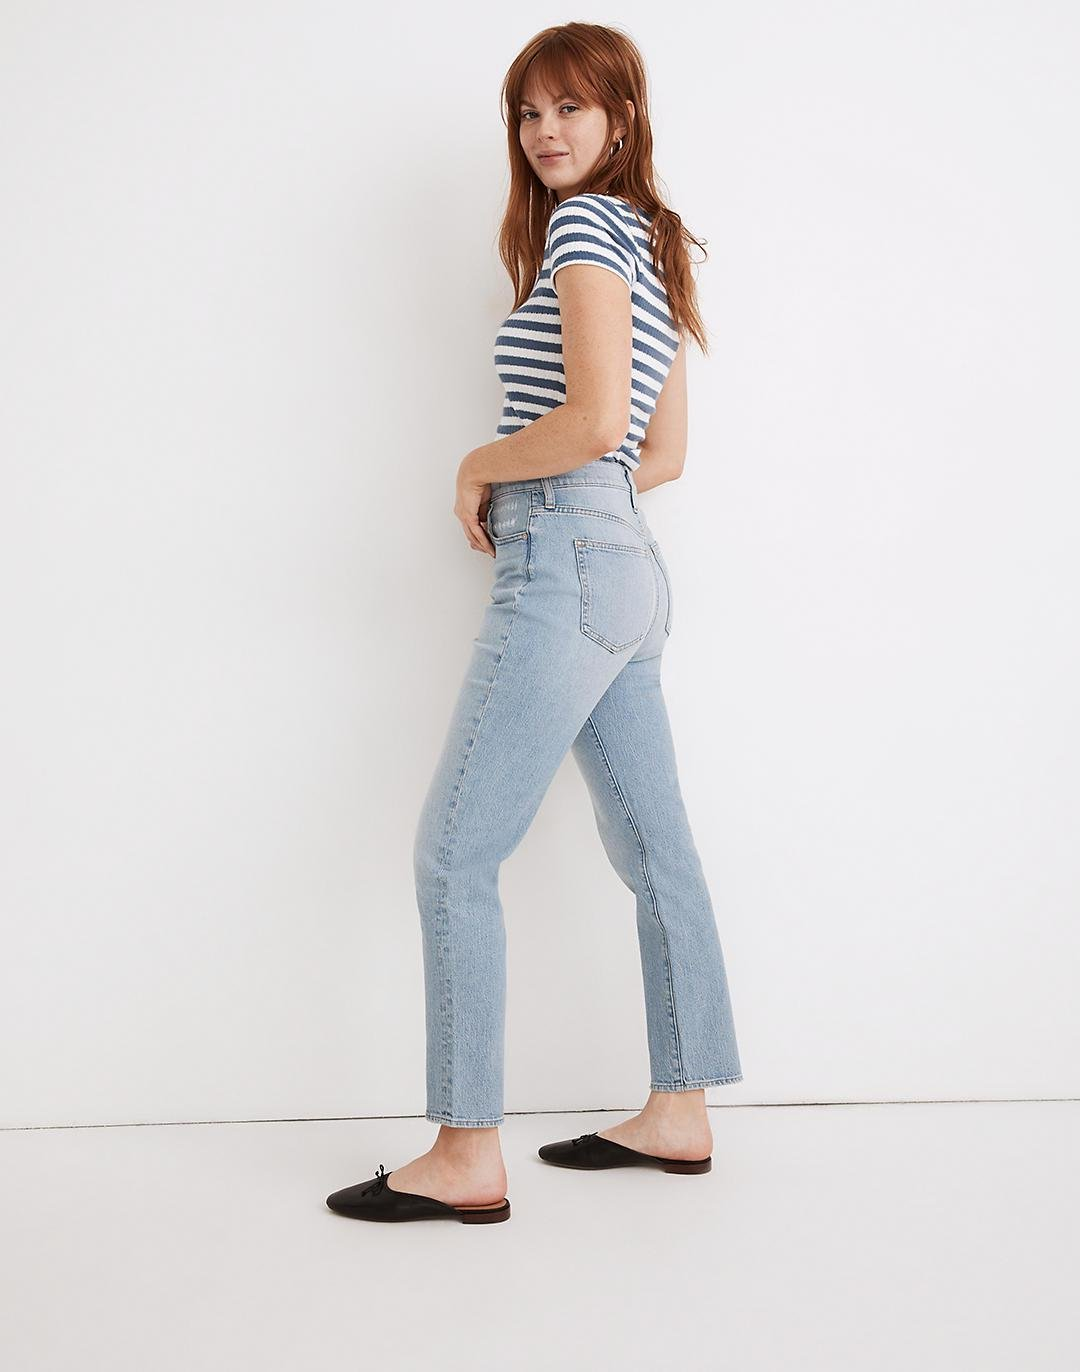 The Curvy Perfect Vintage Jean in Fiore Wash 1